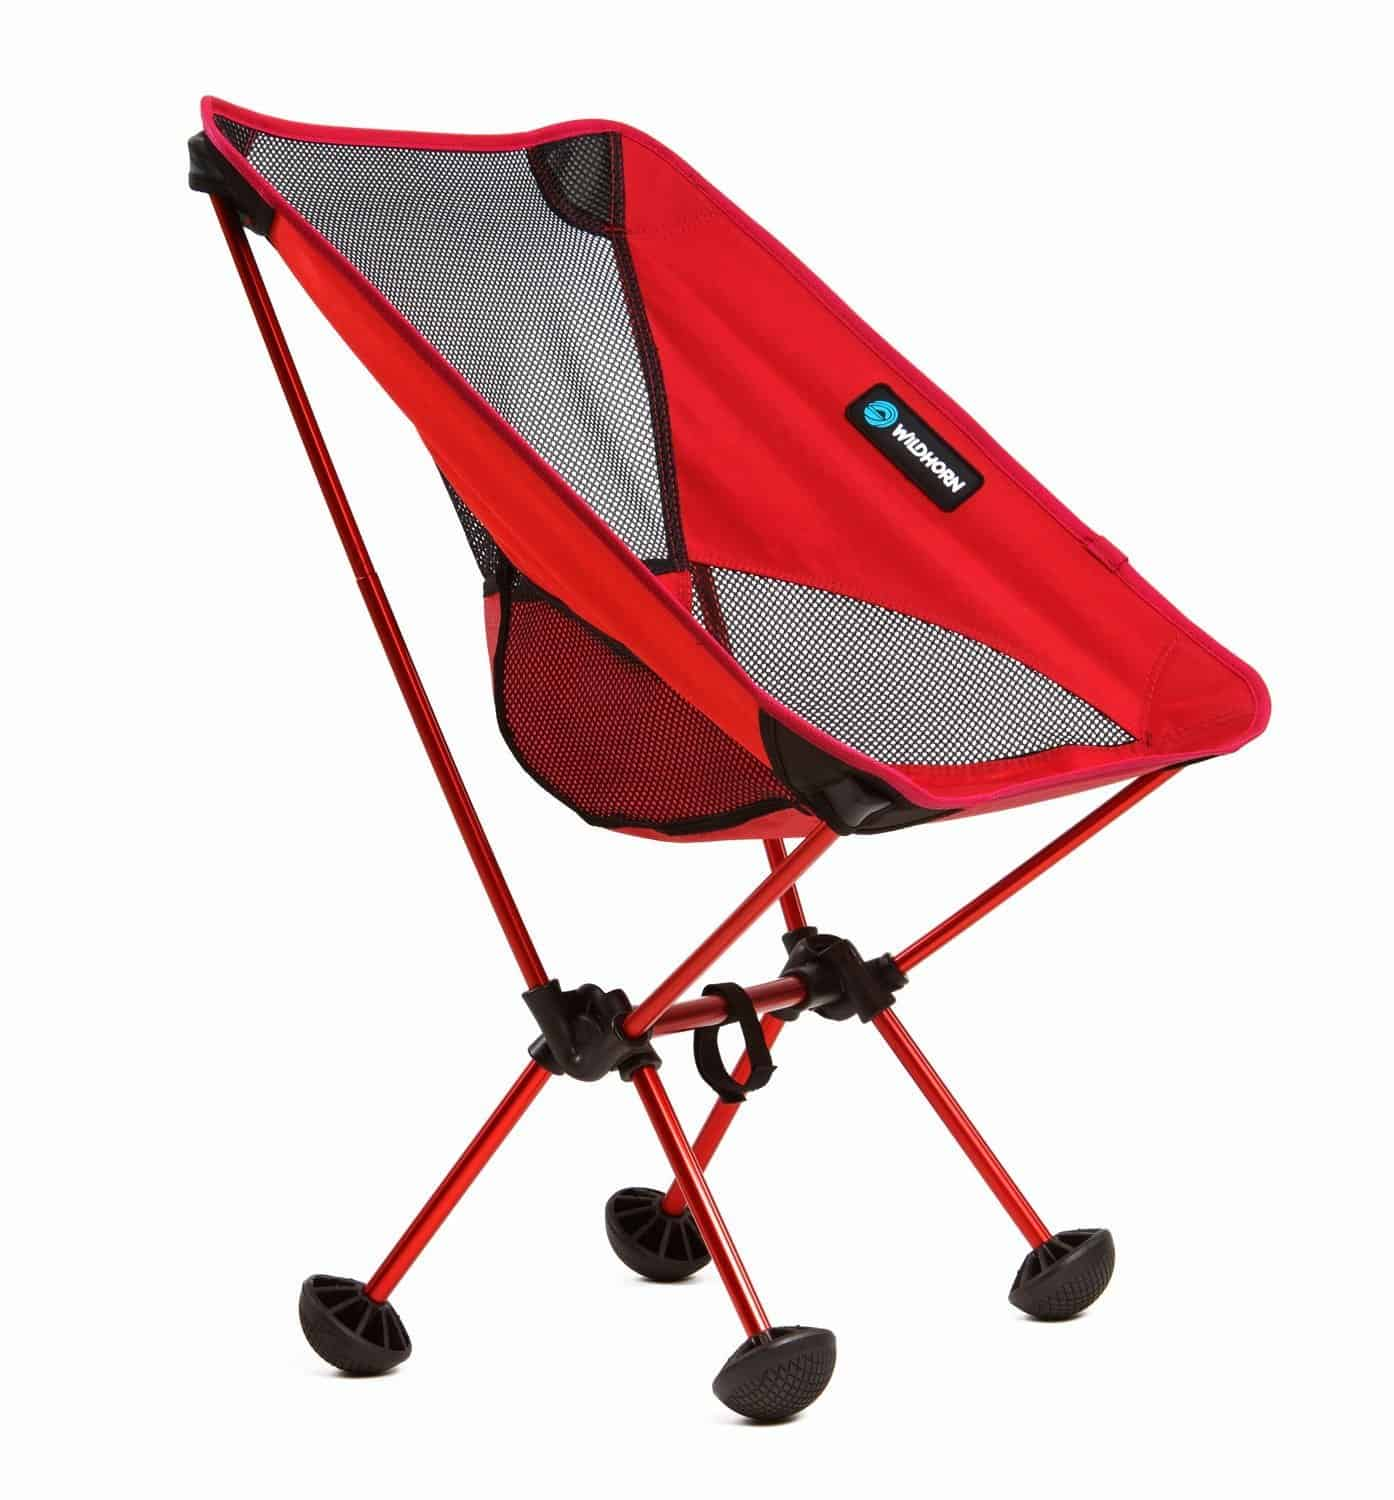 Wildhorn Outfitters Terralite Portable Camping Chair Red